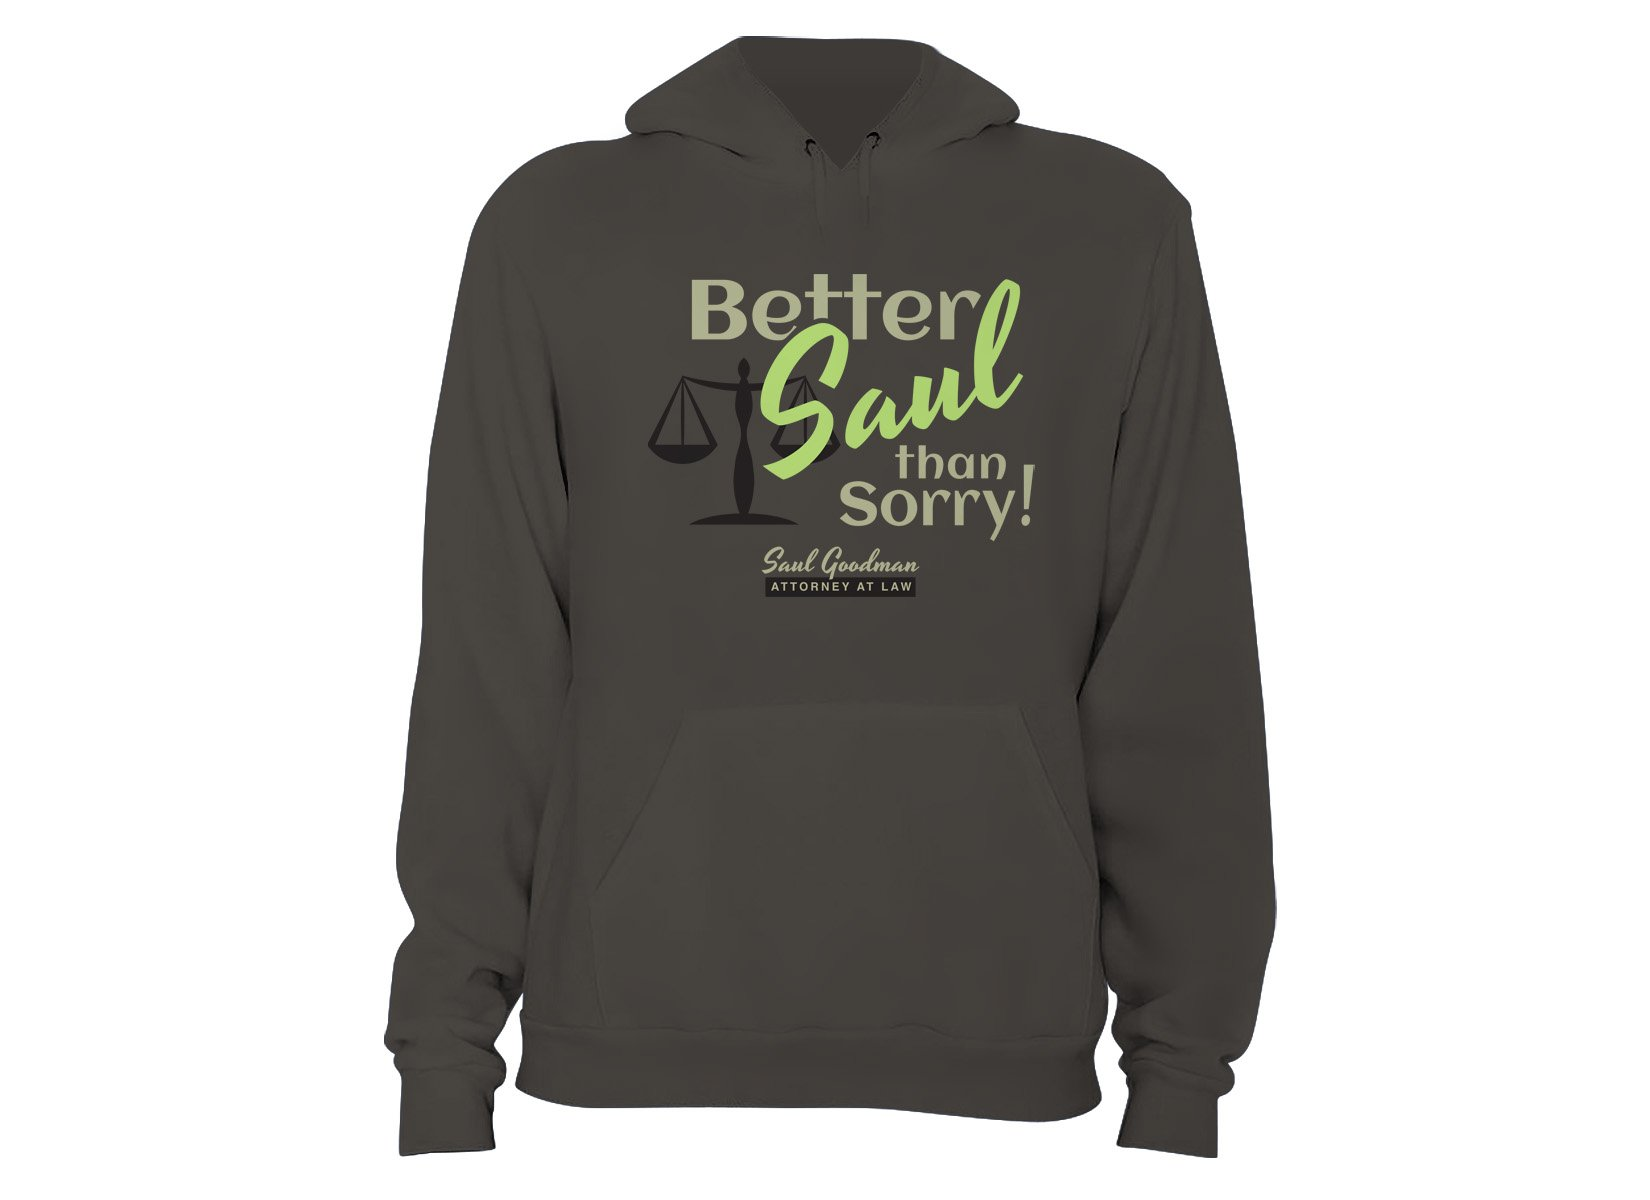 Better Saul Than Sorry! on Hoodie